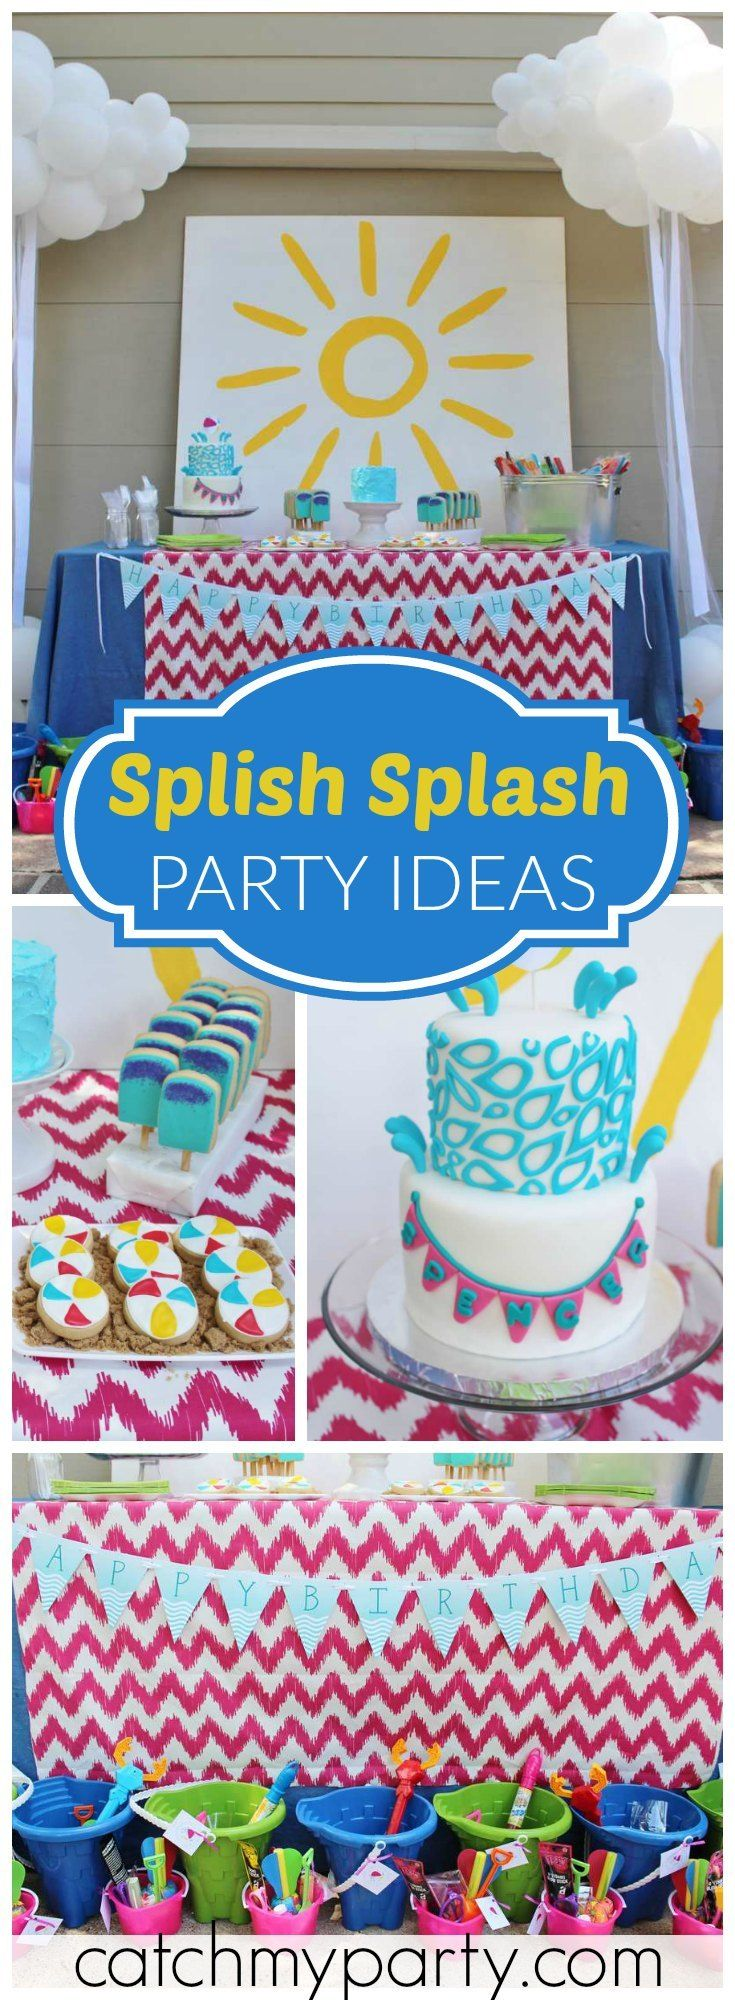 How fun is this splish splash pool party for a first birthday?! See more party ideas at Catchmyparty.com!